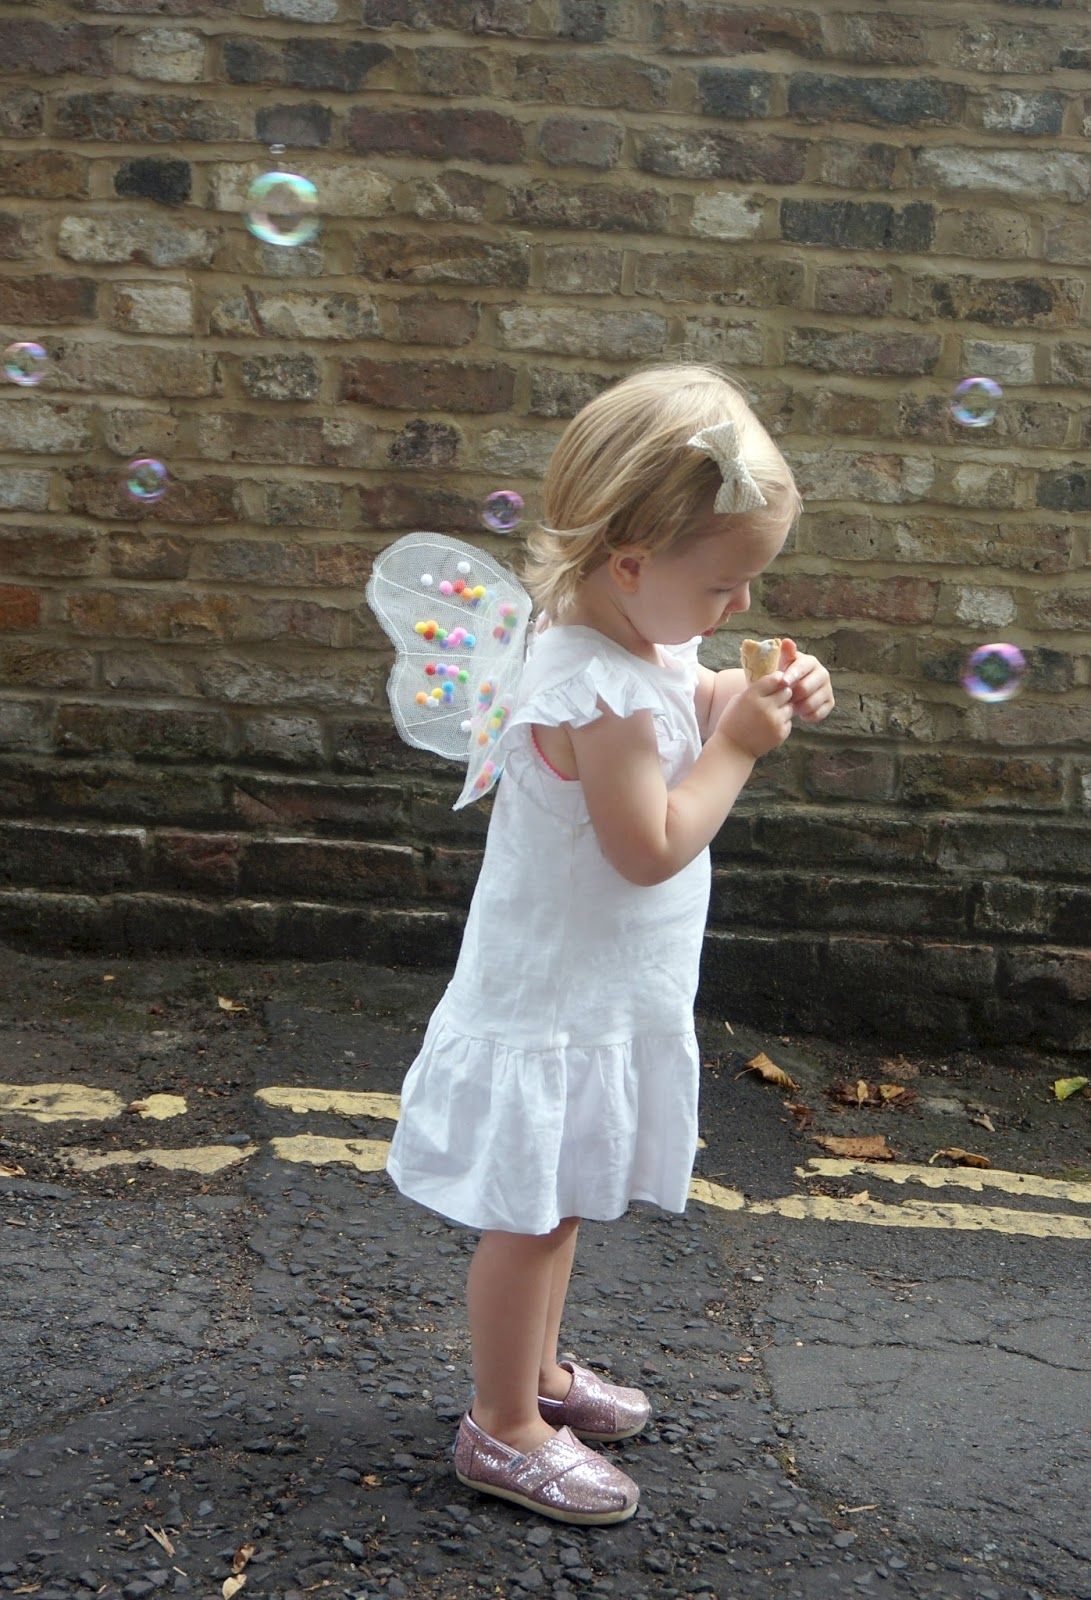 meg-made confetti mariposa butterfly wings girls